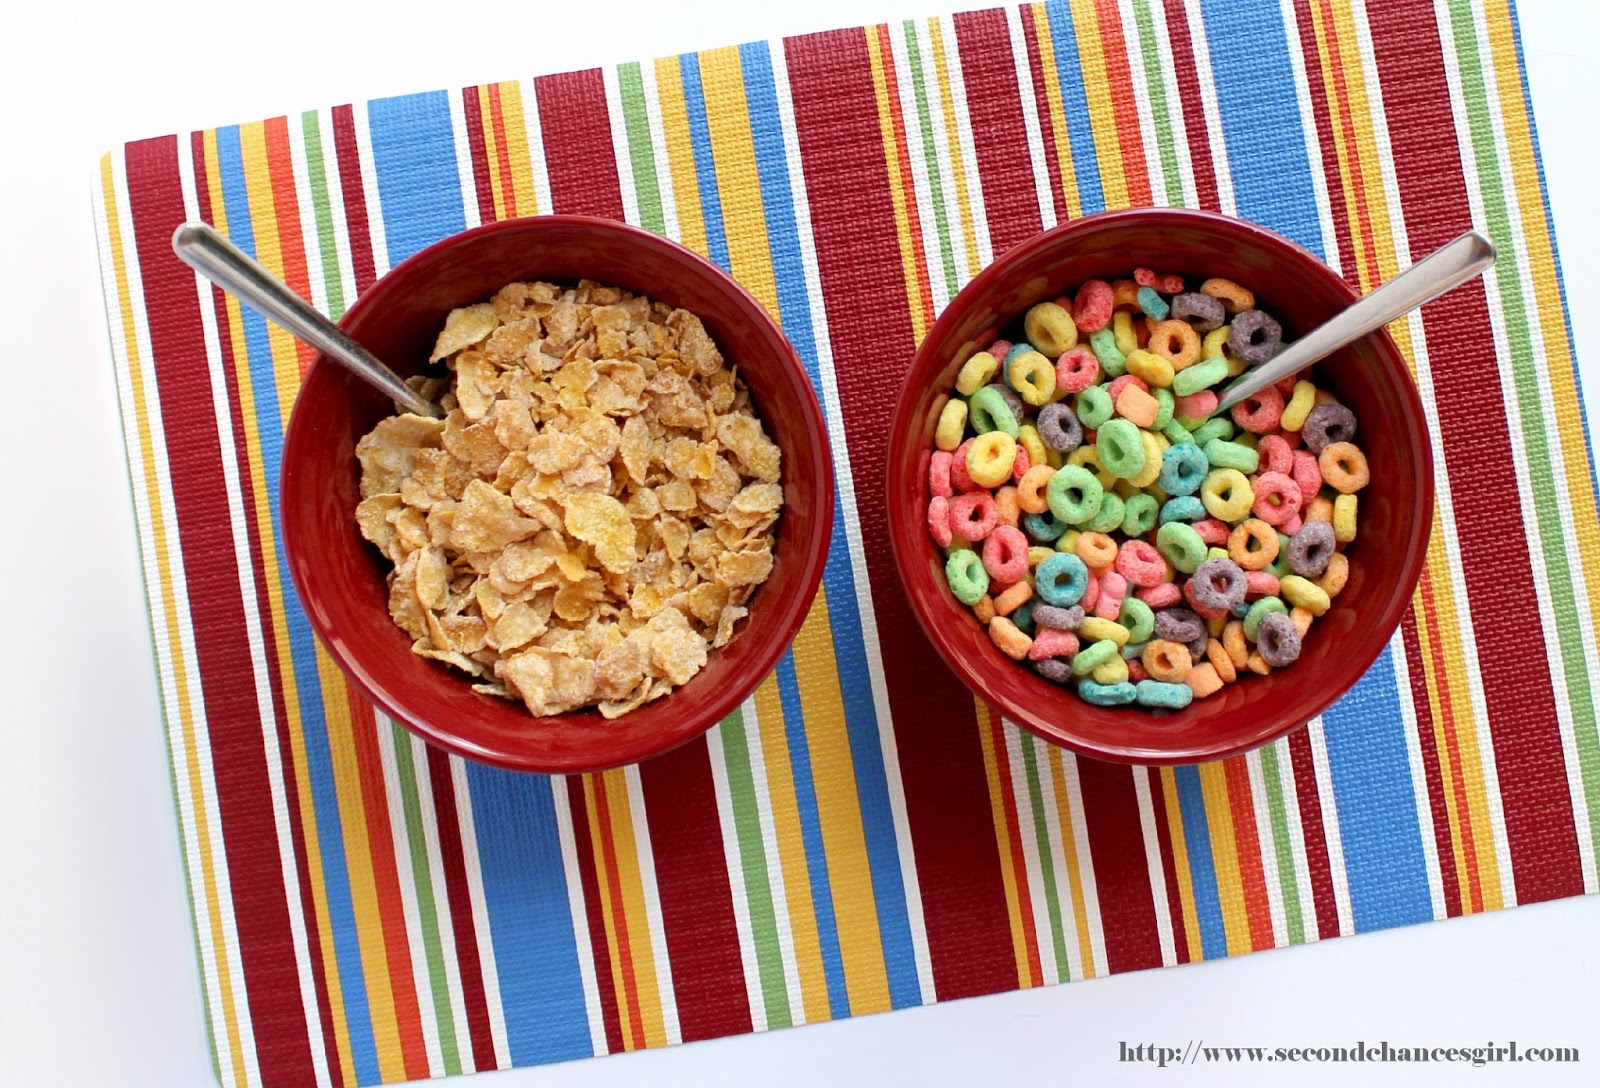 Cereal! It's not just for breakfast anymore! #GoodNightSnack #shop